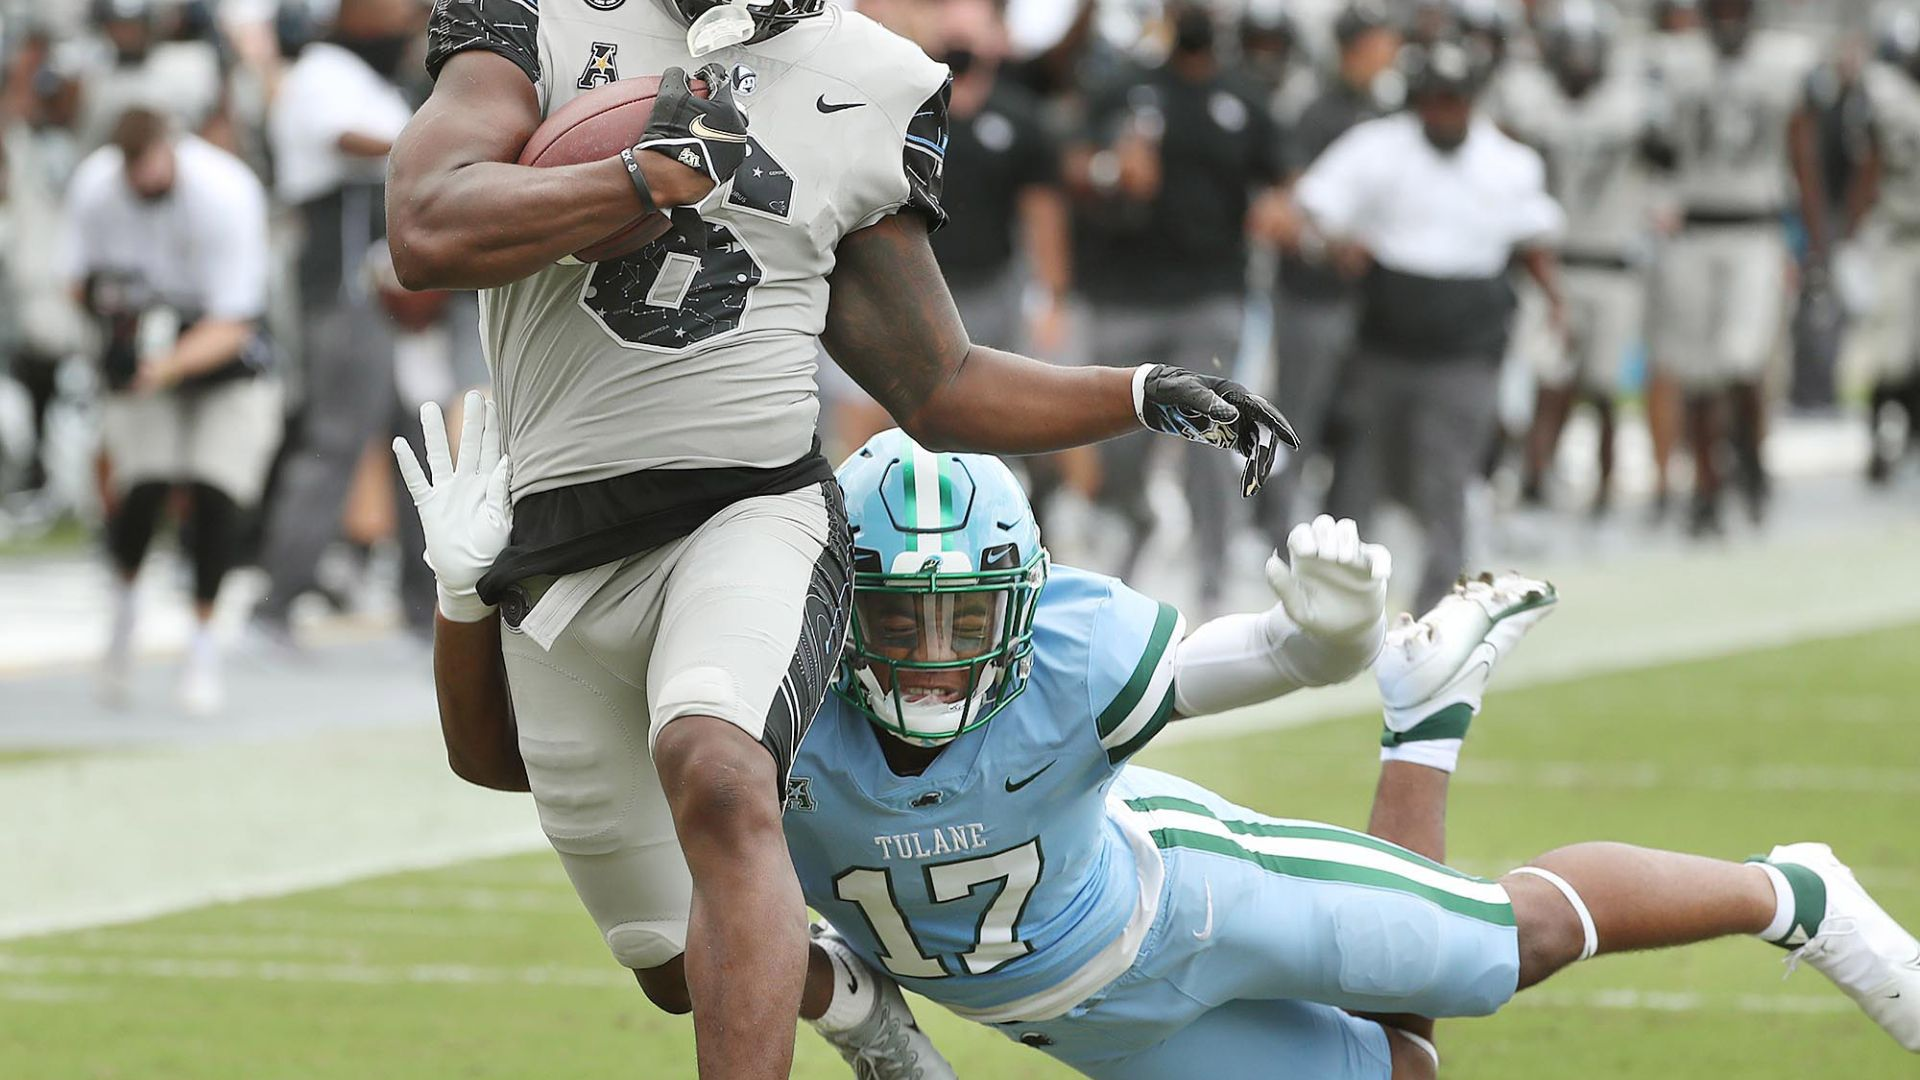 UCF fans should enjoy perhaps greatest offense in college football history